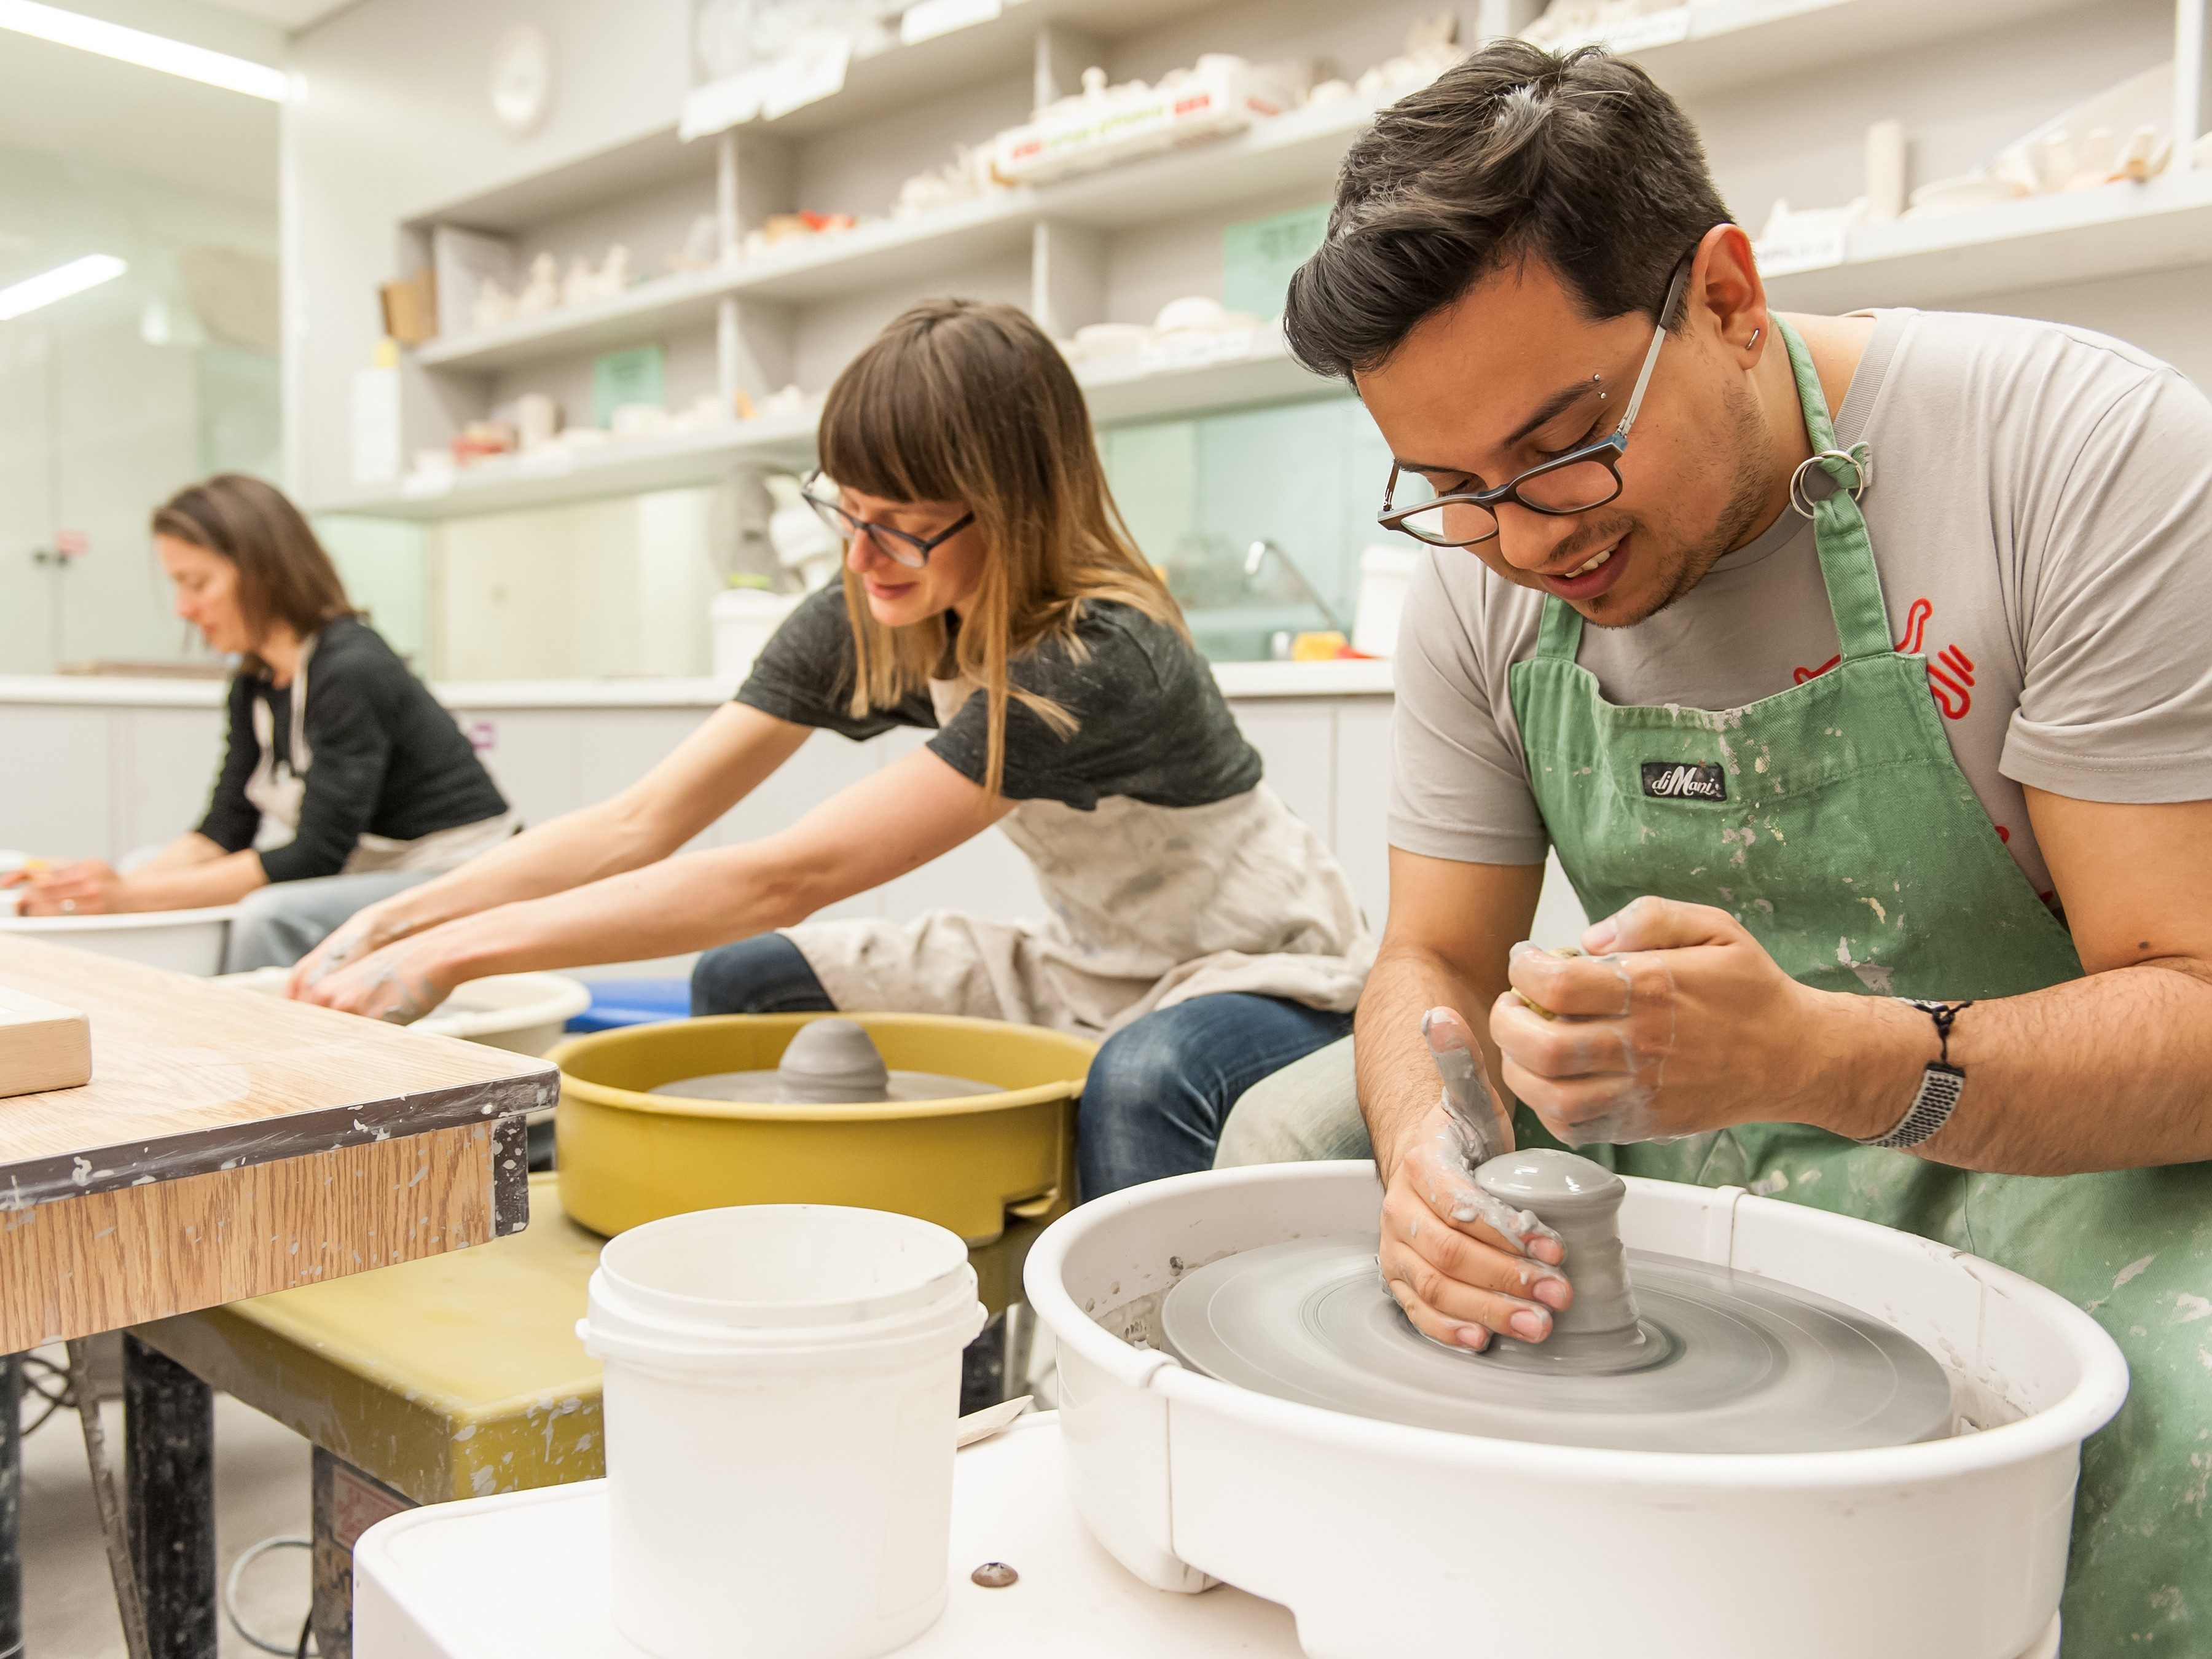 23. Clay class at Gardiner Museum